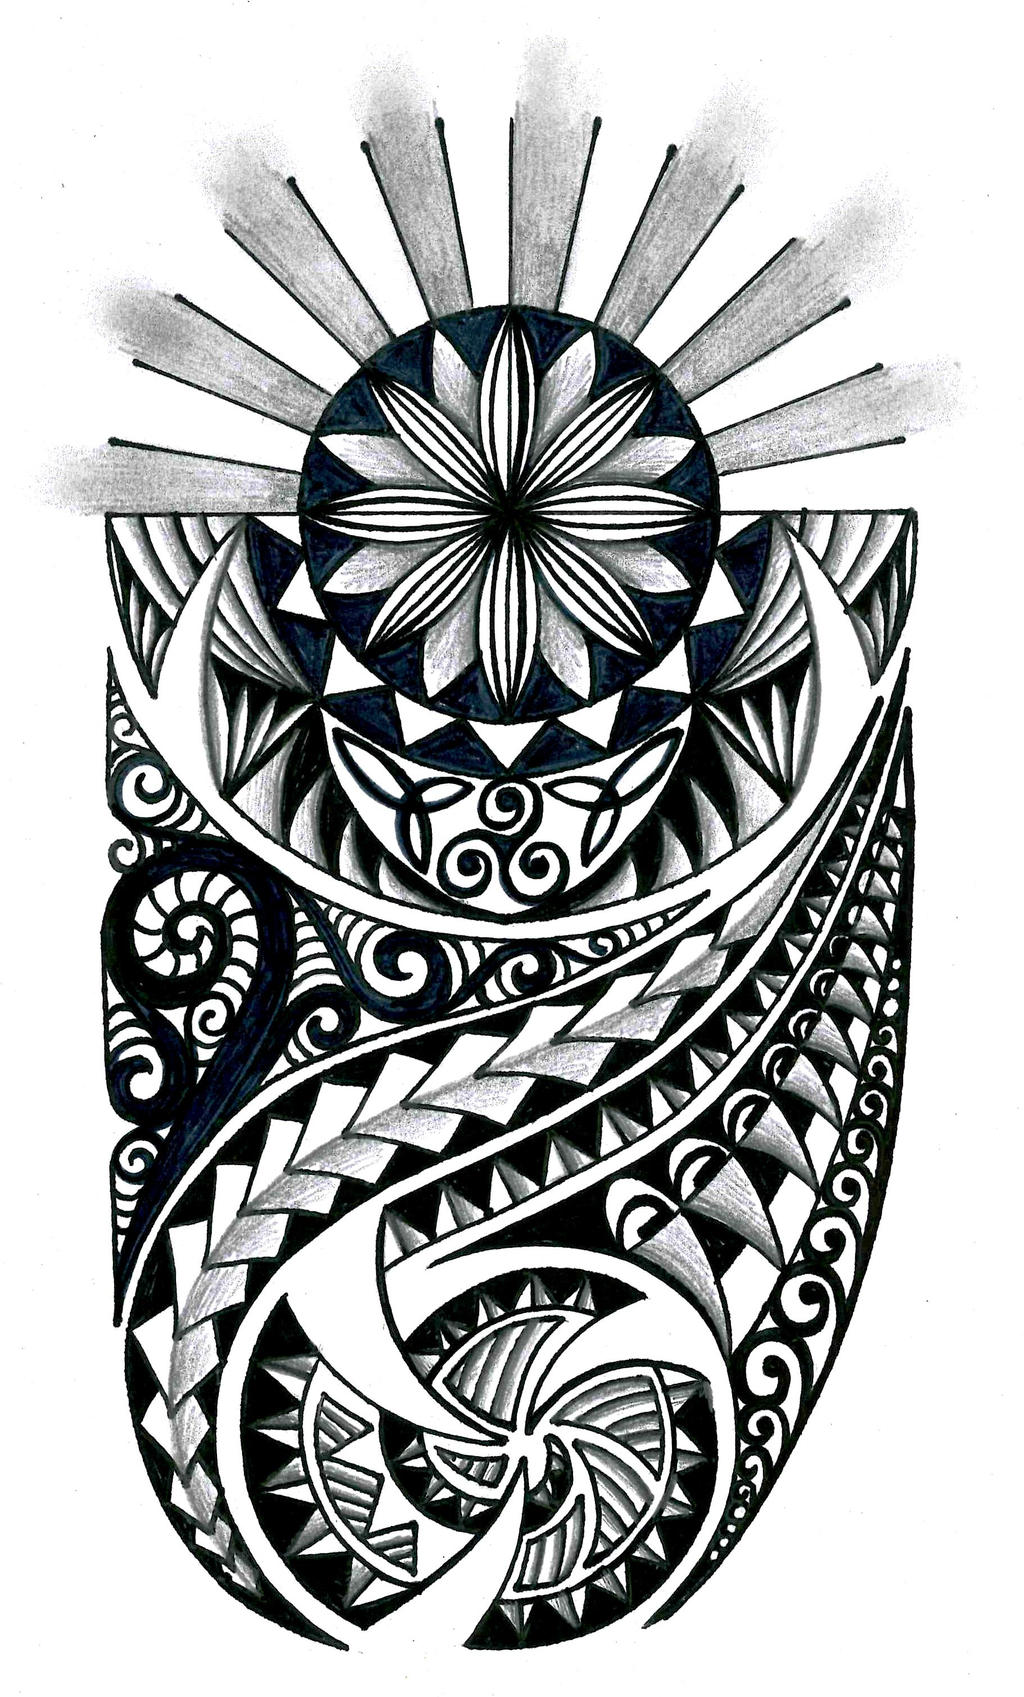 Polynesian tribal tatoos with colors by thehoundofulster on deviantart polynesian tribal design with celtic elements by thehoundofulster biocorpaavc Image collections